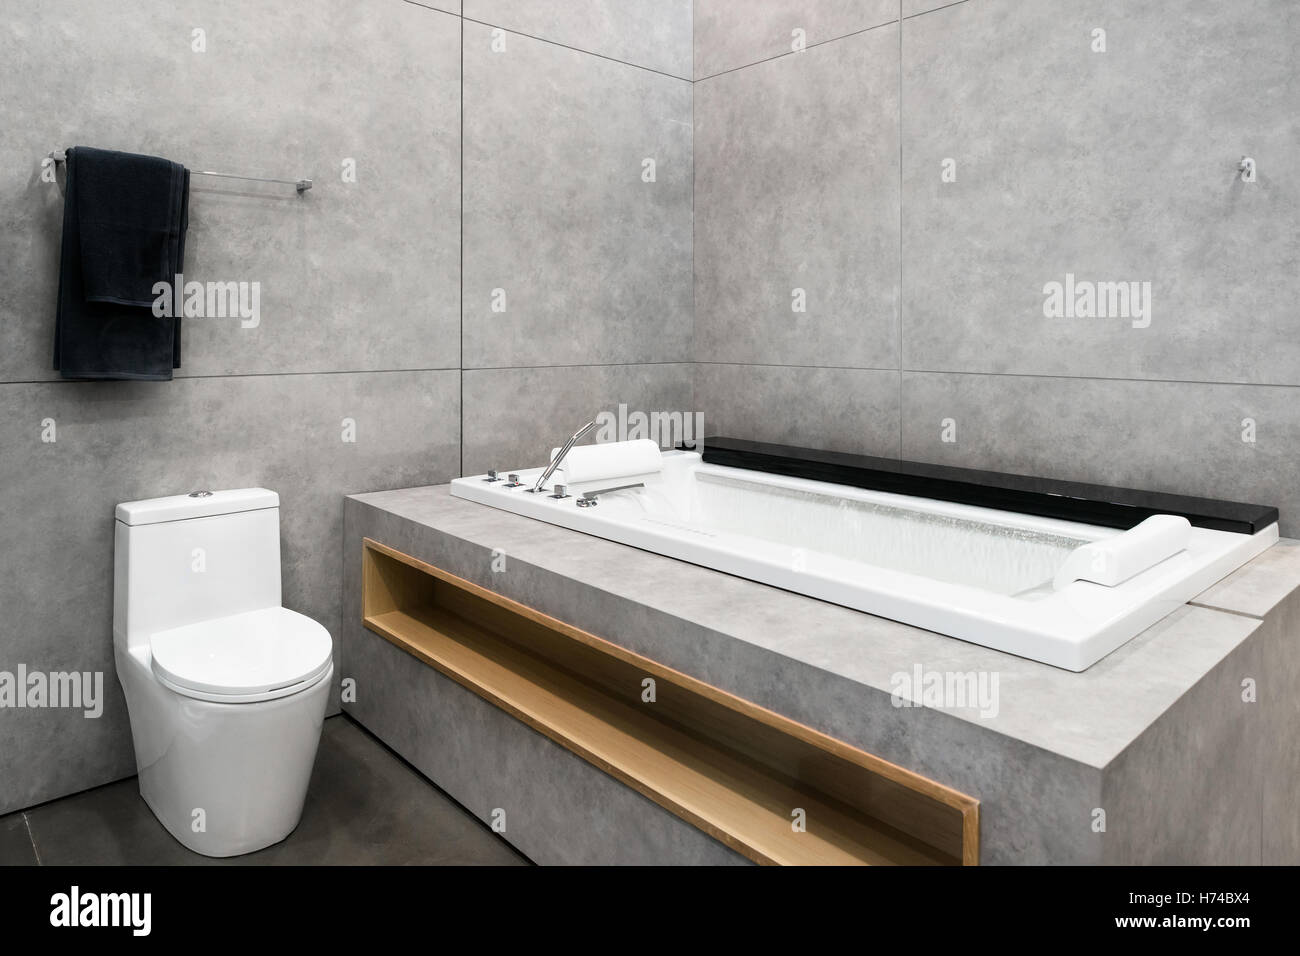 White round jacuzzi with swirling water in bathroom at hotel spa center. Interior bathroom in hotel. - Stock Image